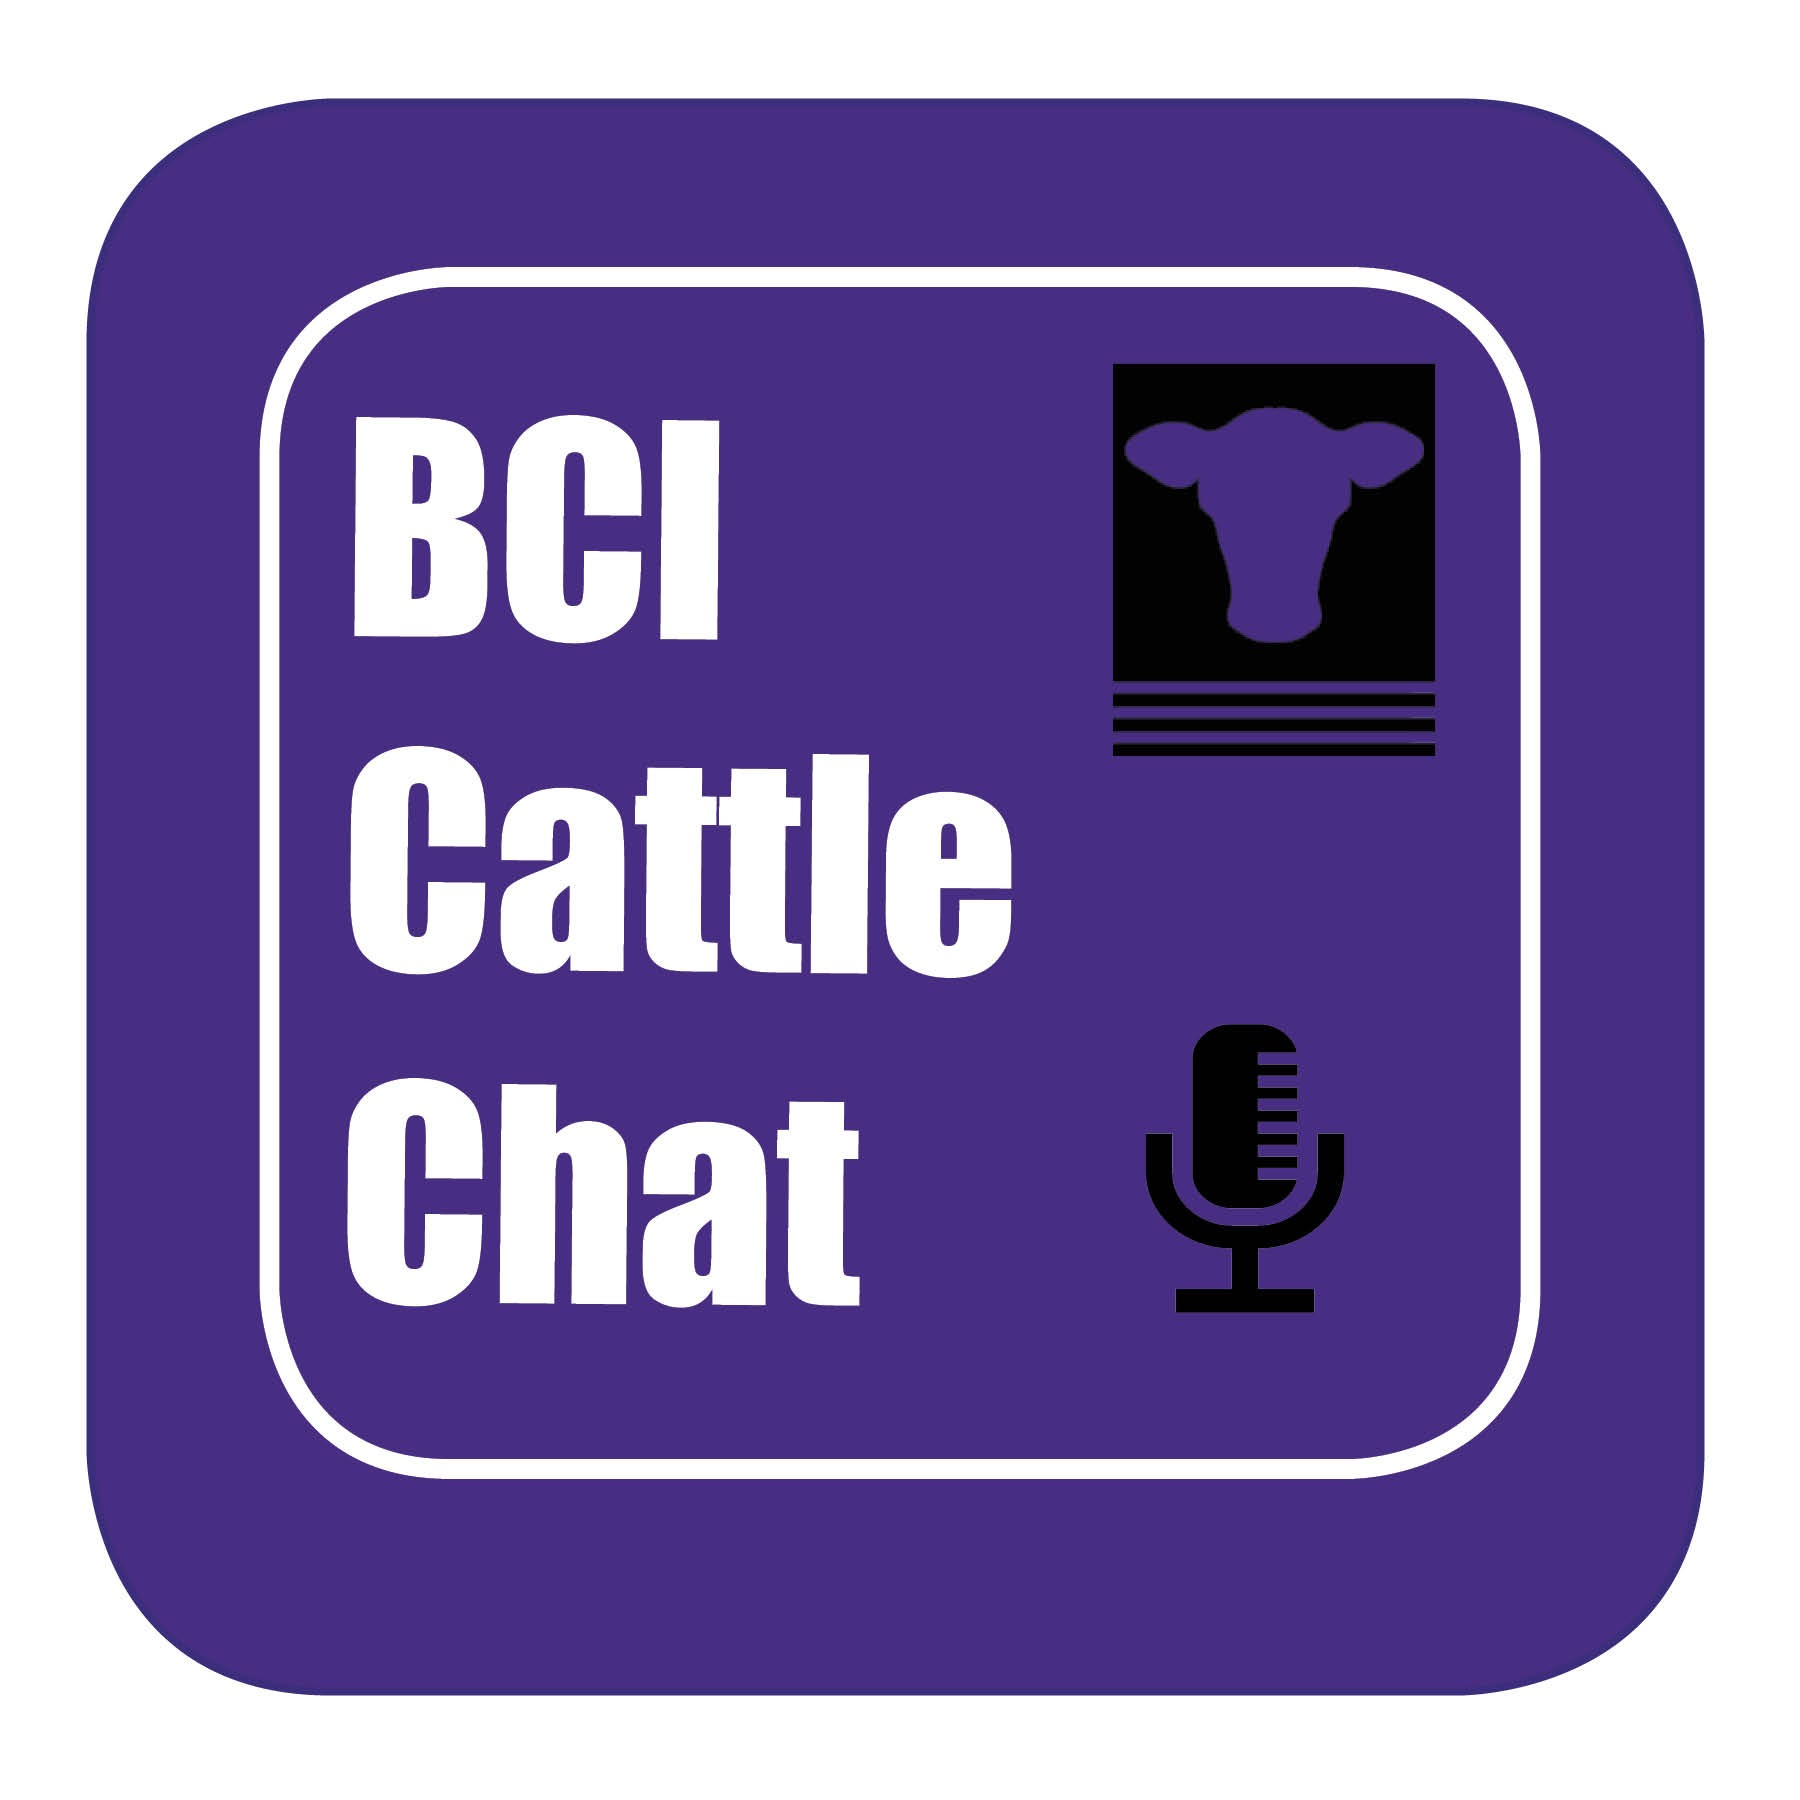 BCI Cattle Chat - Episode 46